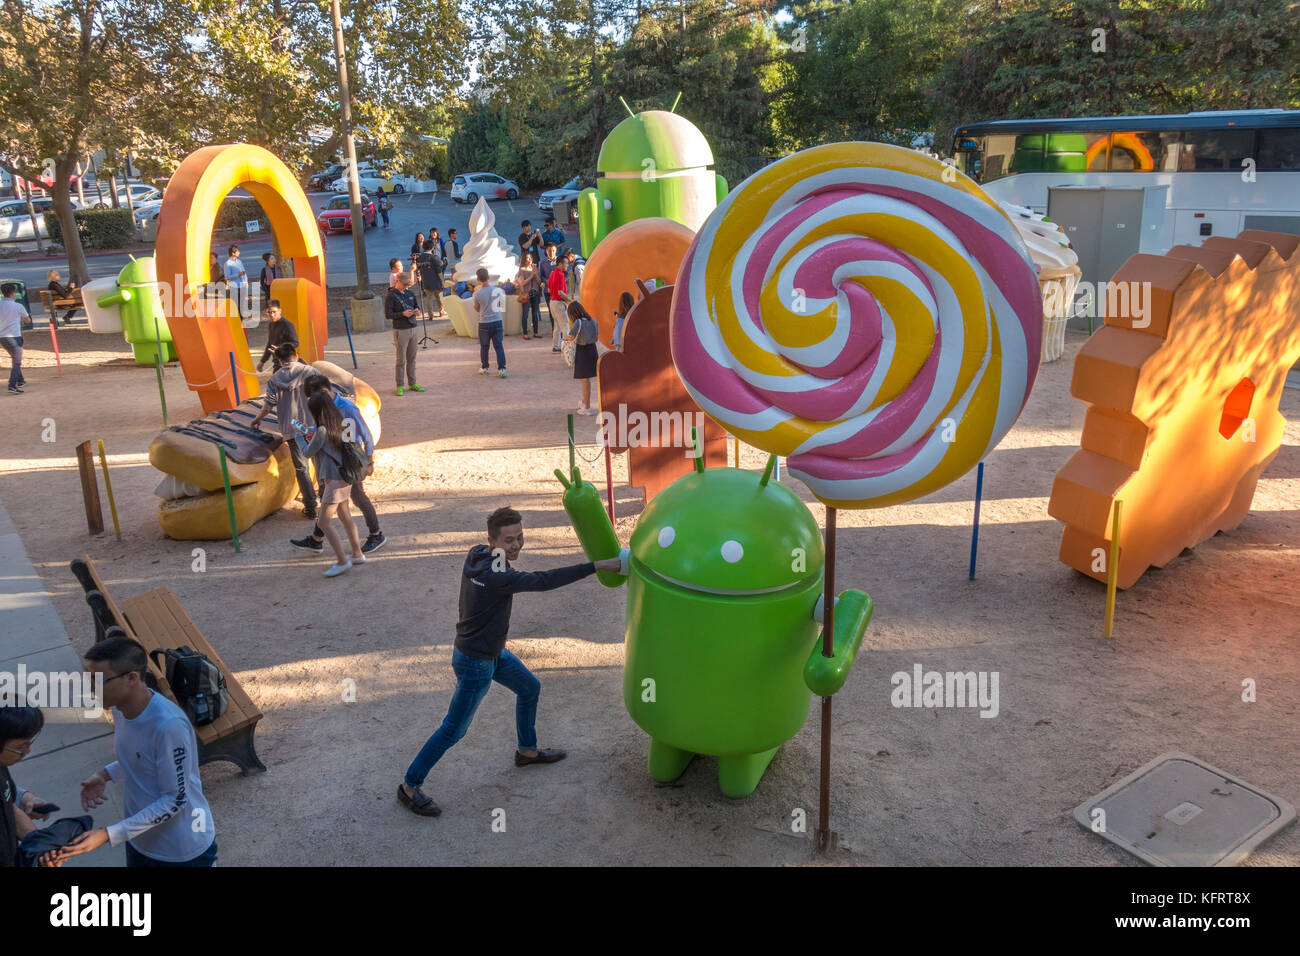 https://c7.alamy.com/comp/KFRT8X/android-sculpture-garden-or-android-lawn-statue-park-on-the-google-KFRT8X.jpg